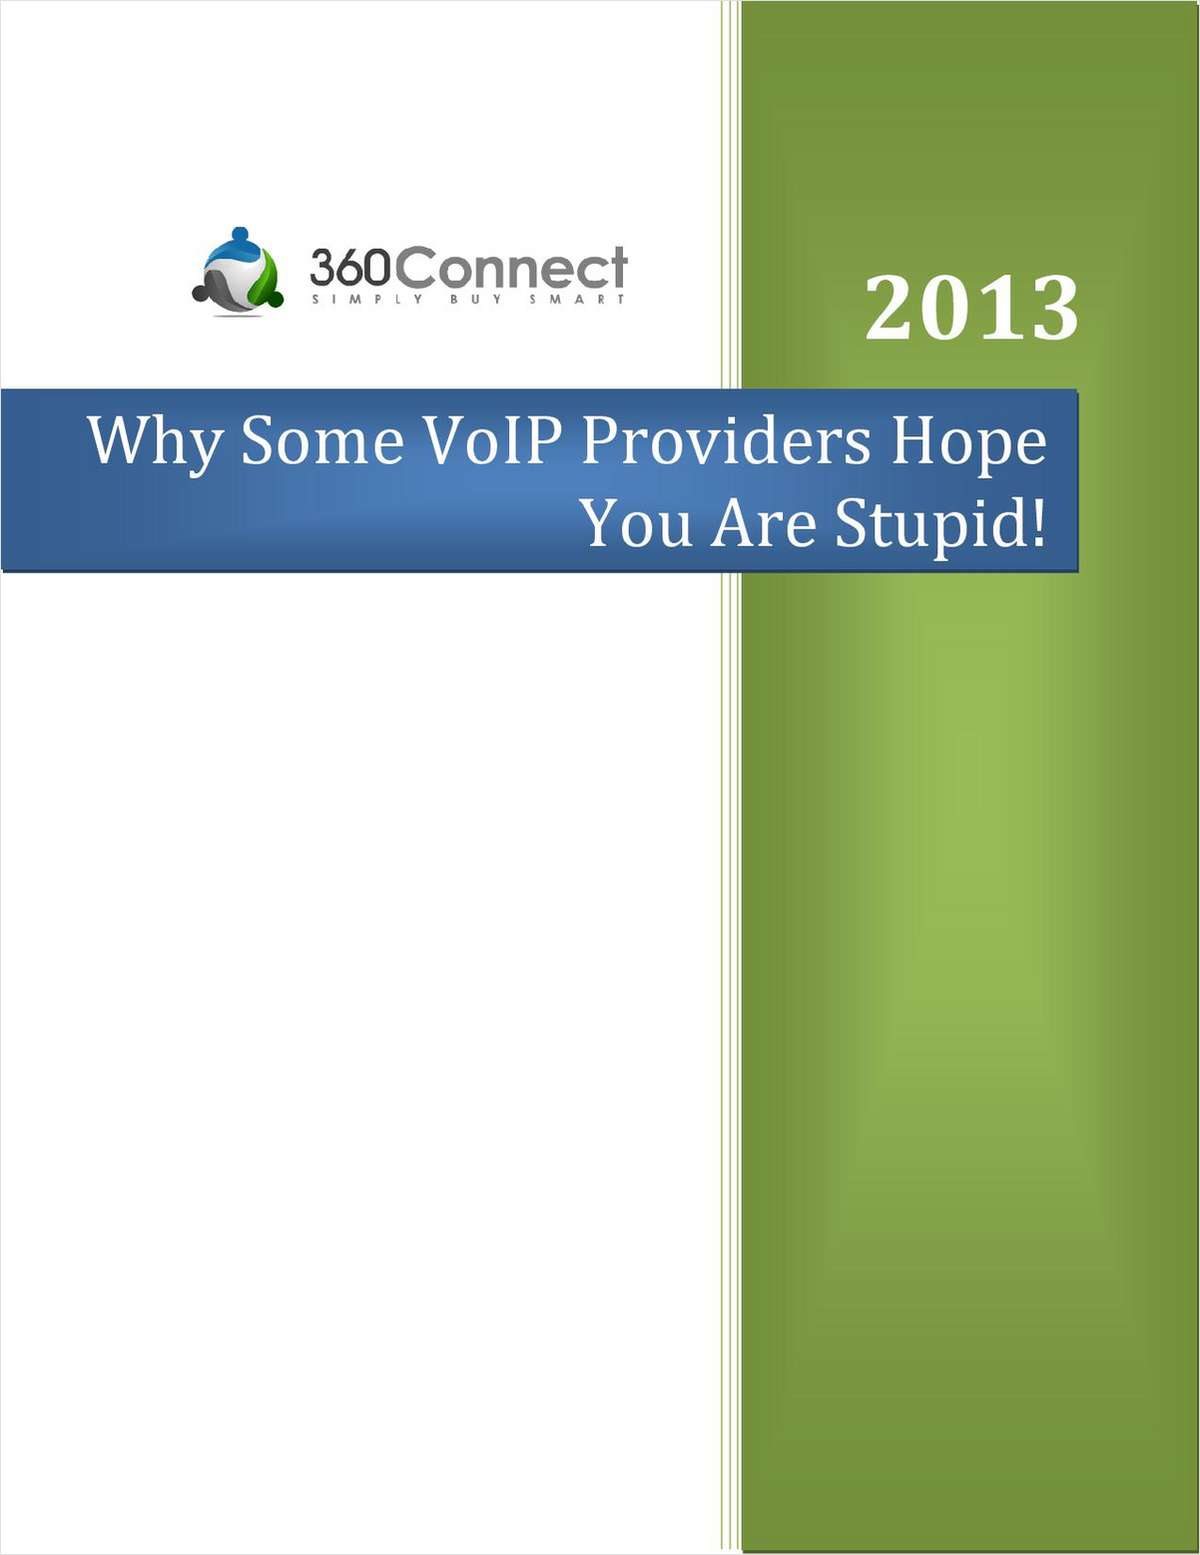 Why Some VOIP Providers Hope You Are Stupid